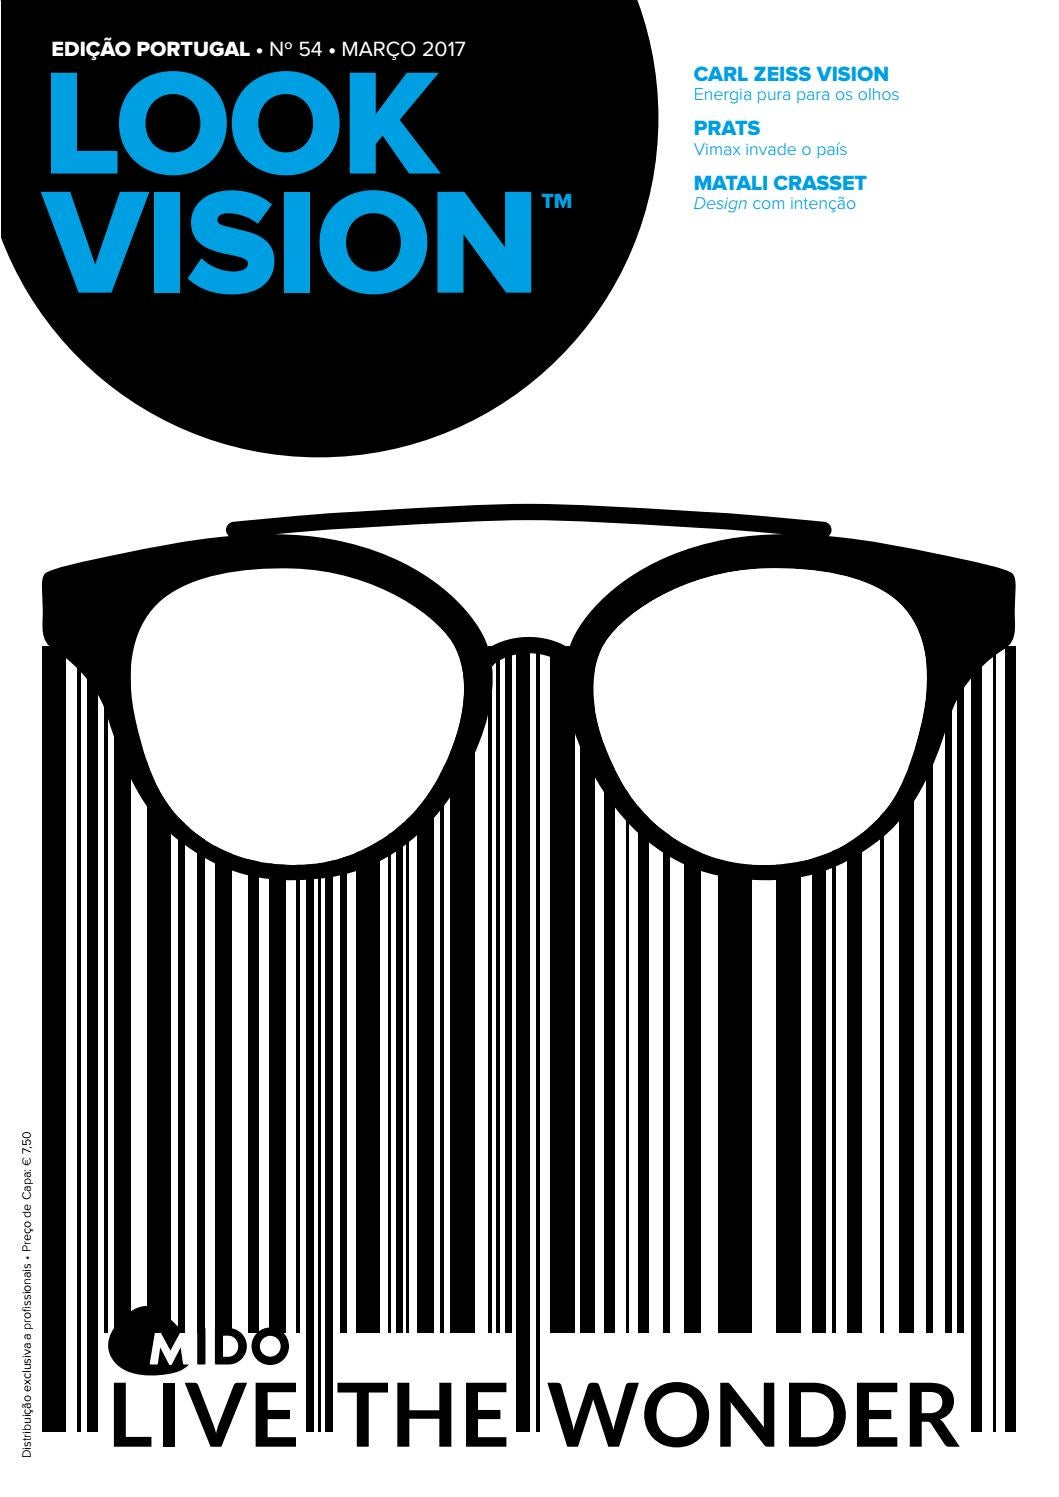 fe01e2b2f7646 Lookvision54 issu by LookVision Portugal - issuu